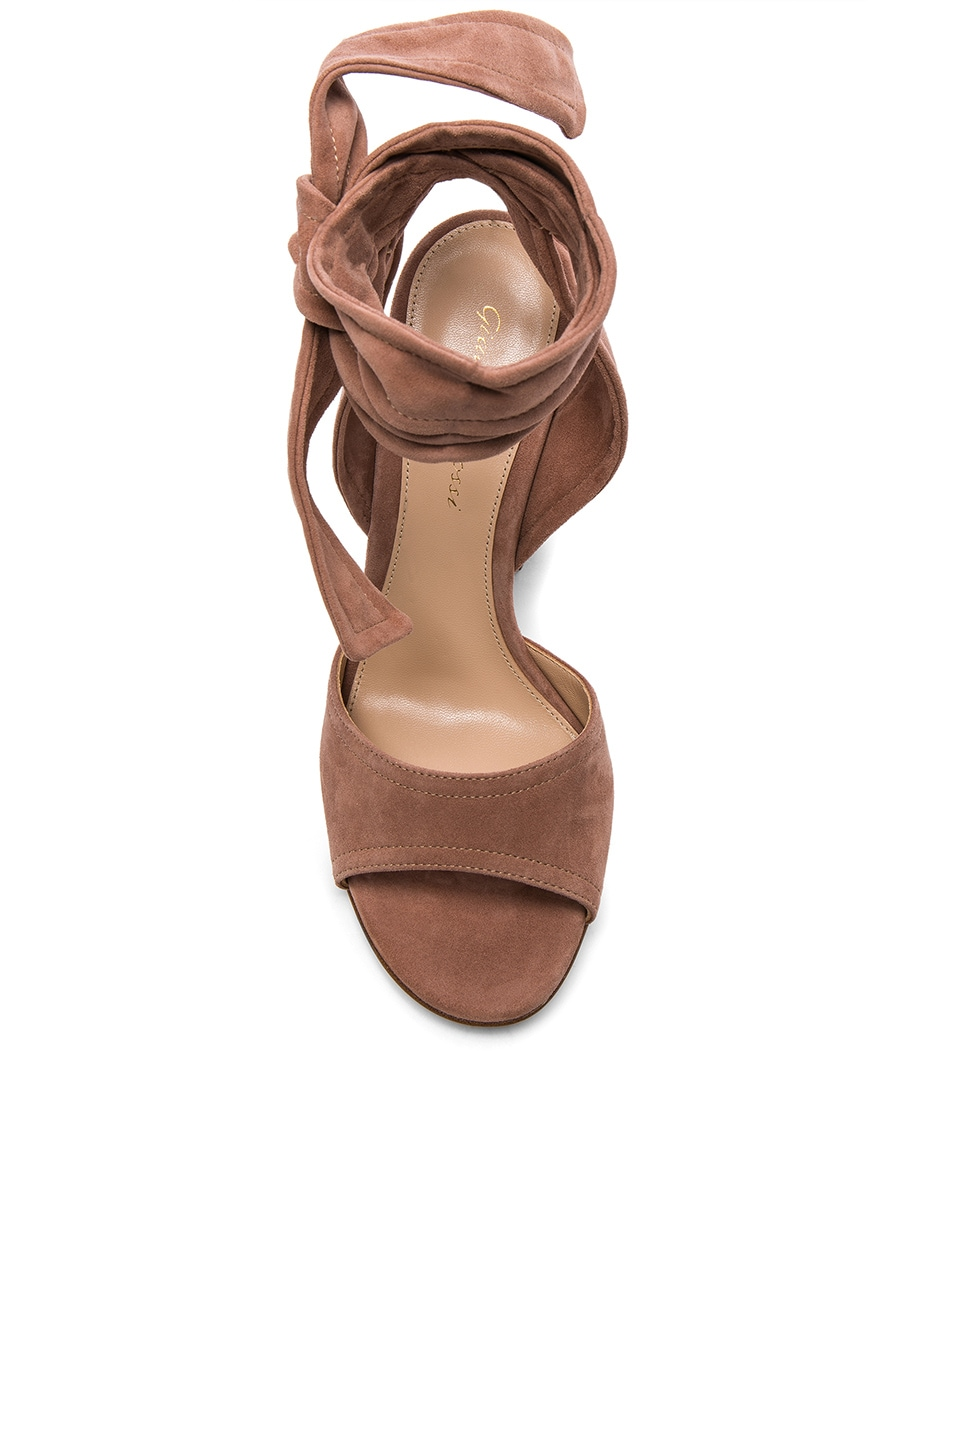 Image 4 of Gianvito Rossi Suede Ankle Tie Heels in Praline